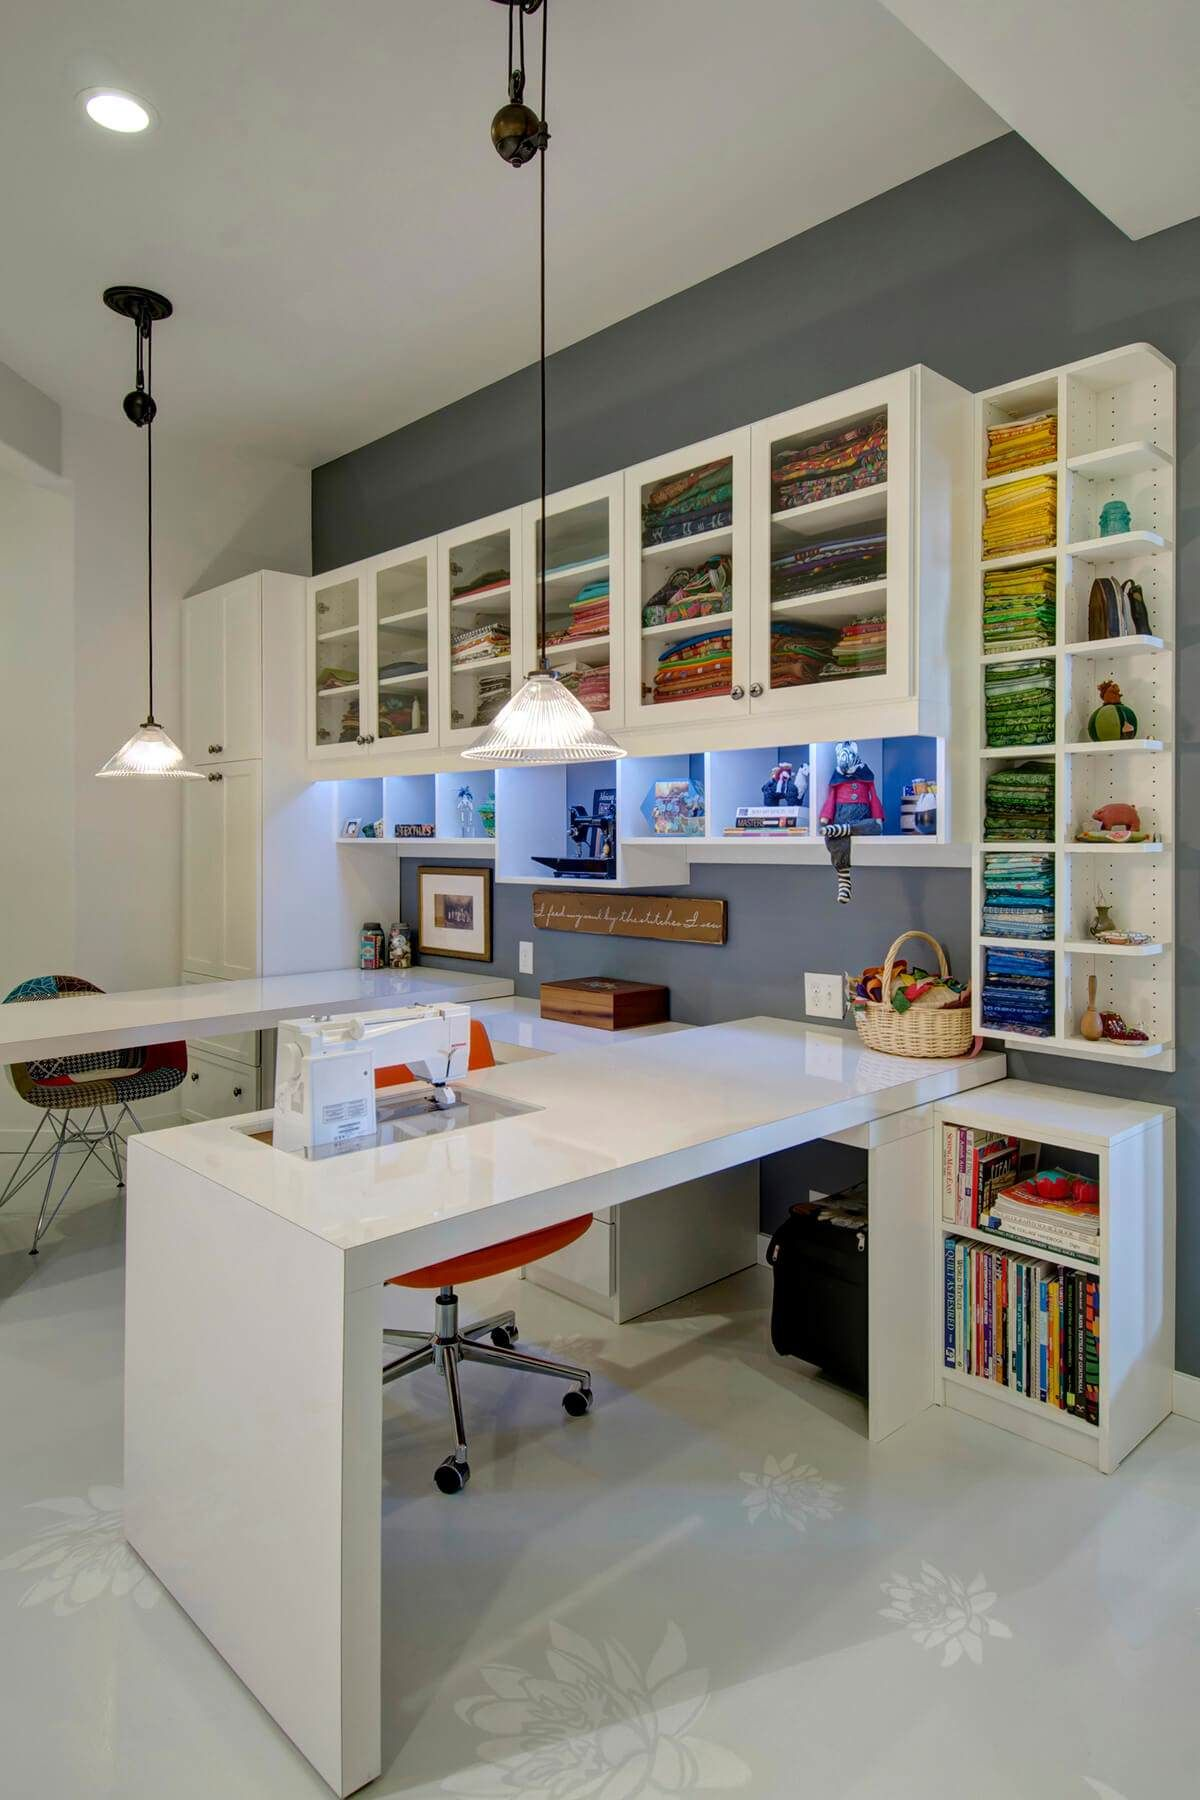 craft rooms ideas decorating 23 craft room design ideas creative rooms decorating 4038